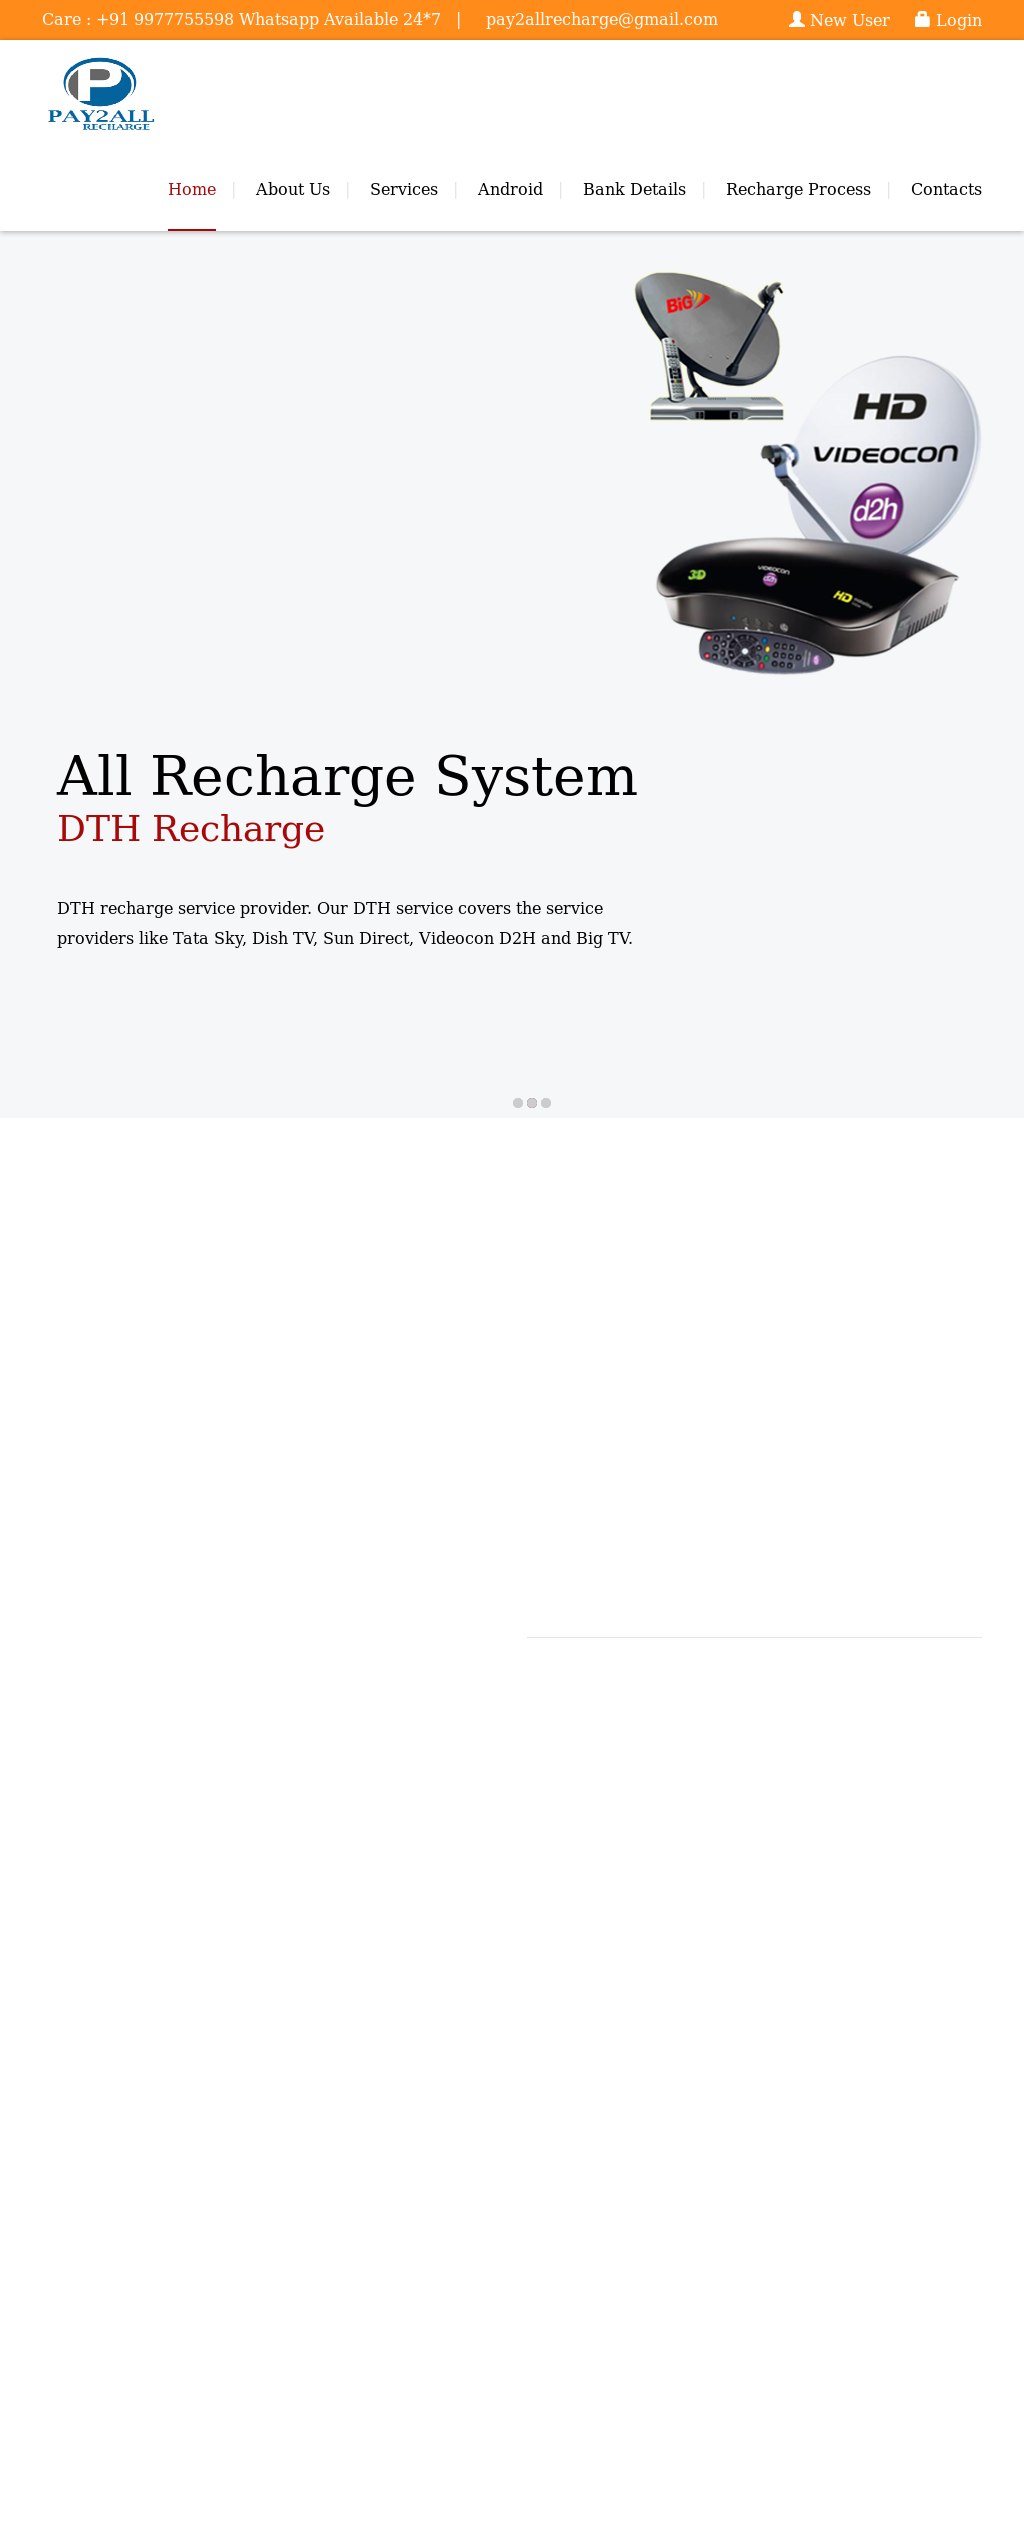 Pay2all Recharge Competitors, Revenue and Employees - Owler